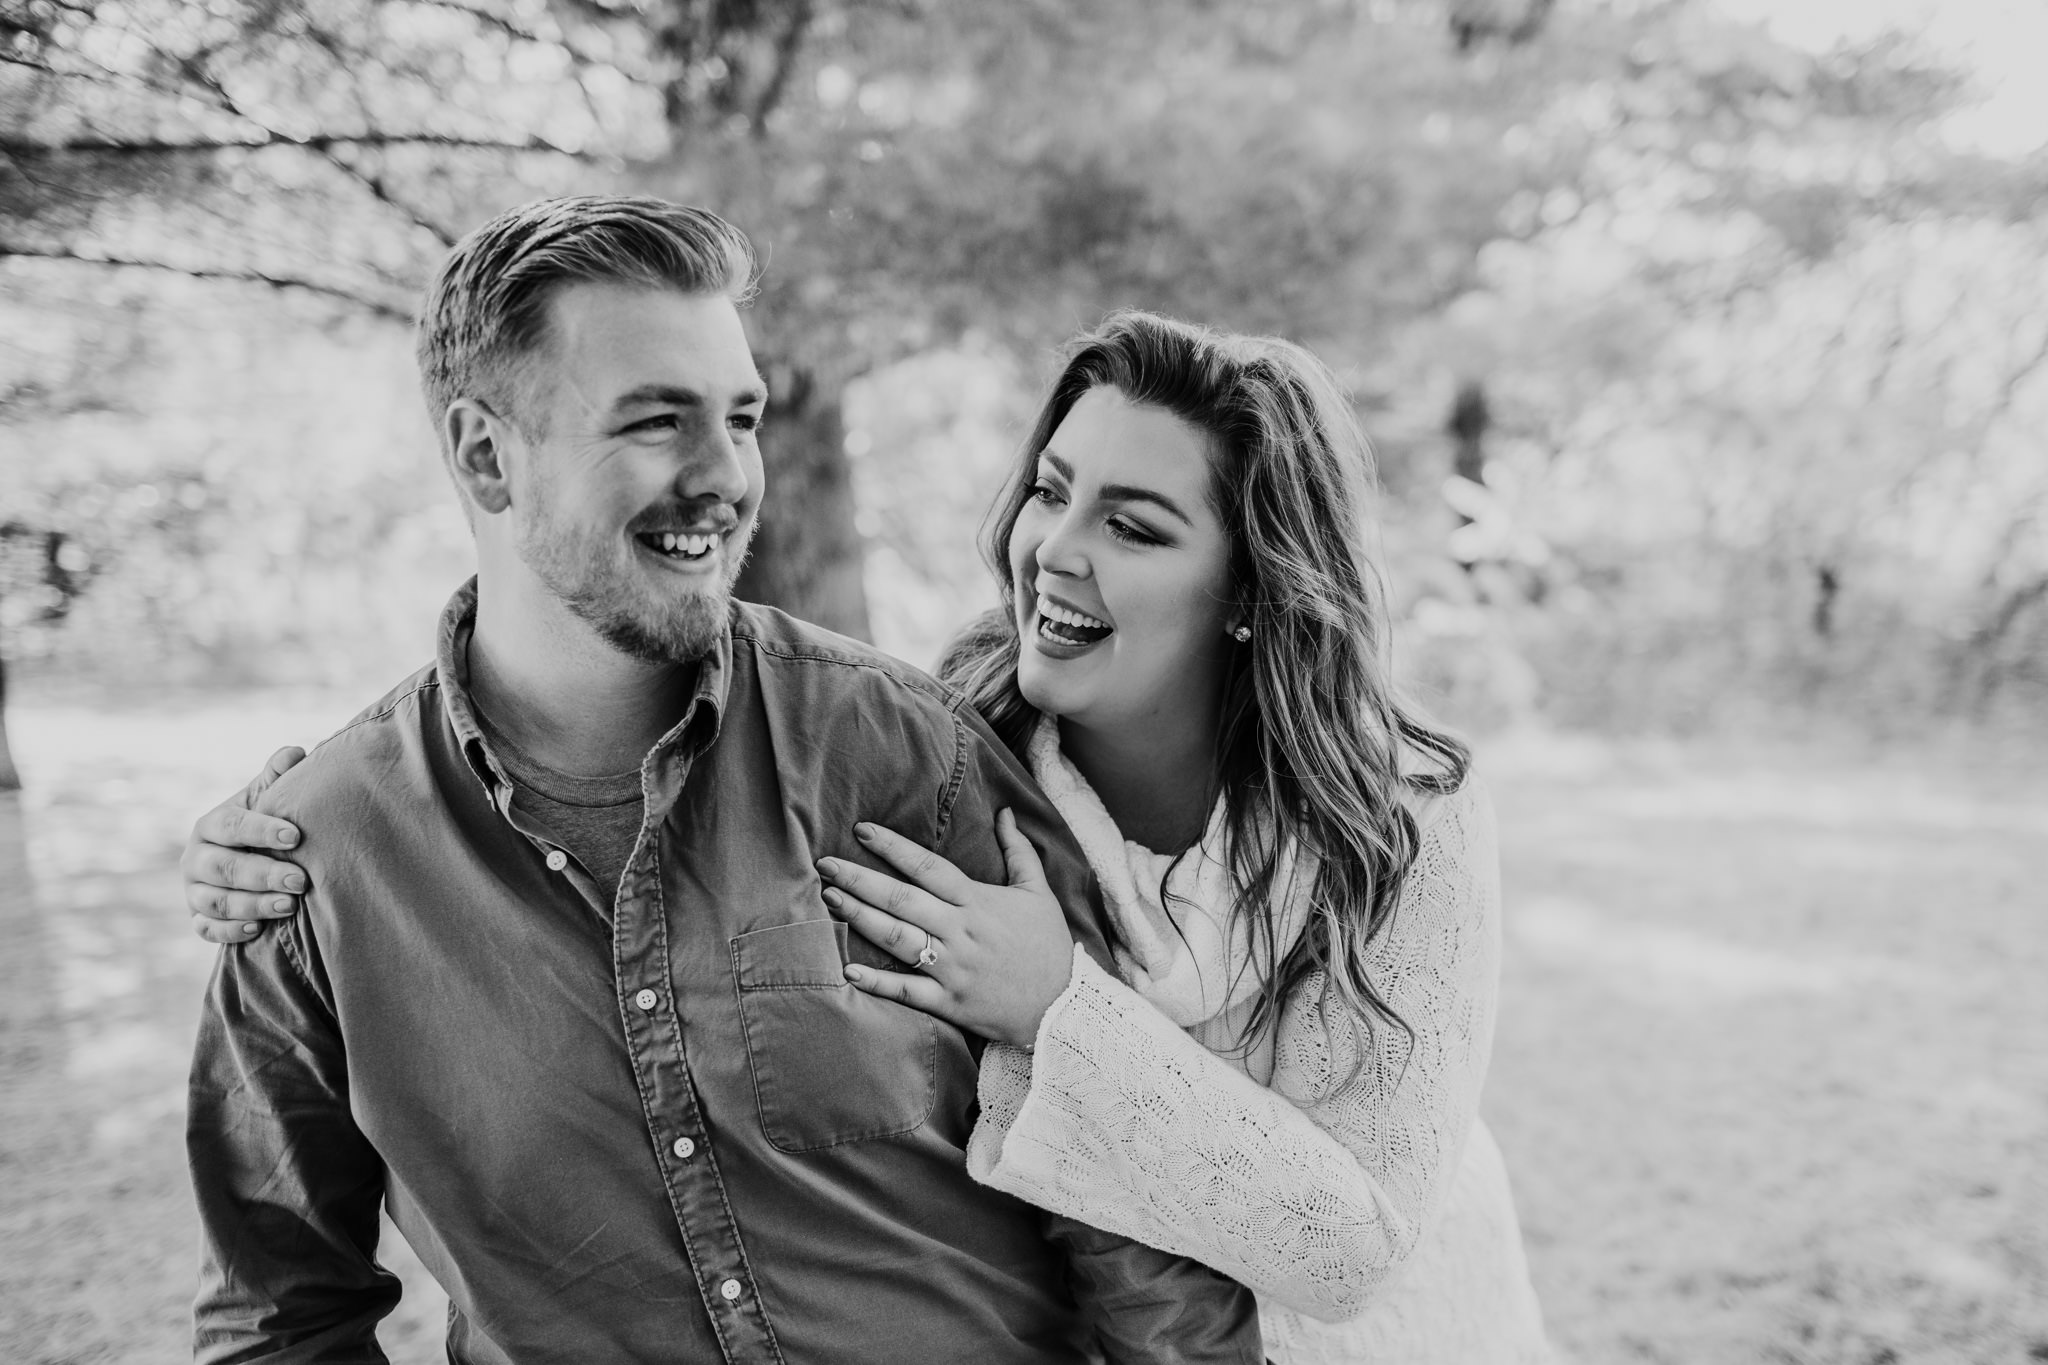 black and white image of a couple laughing together while bride looks at groom